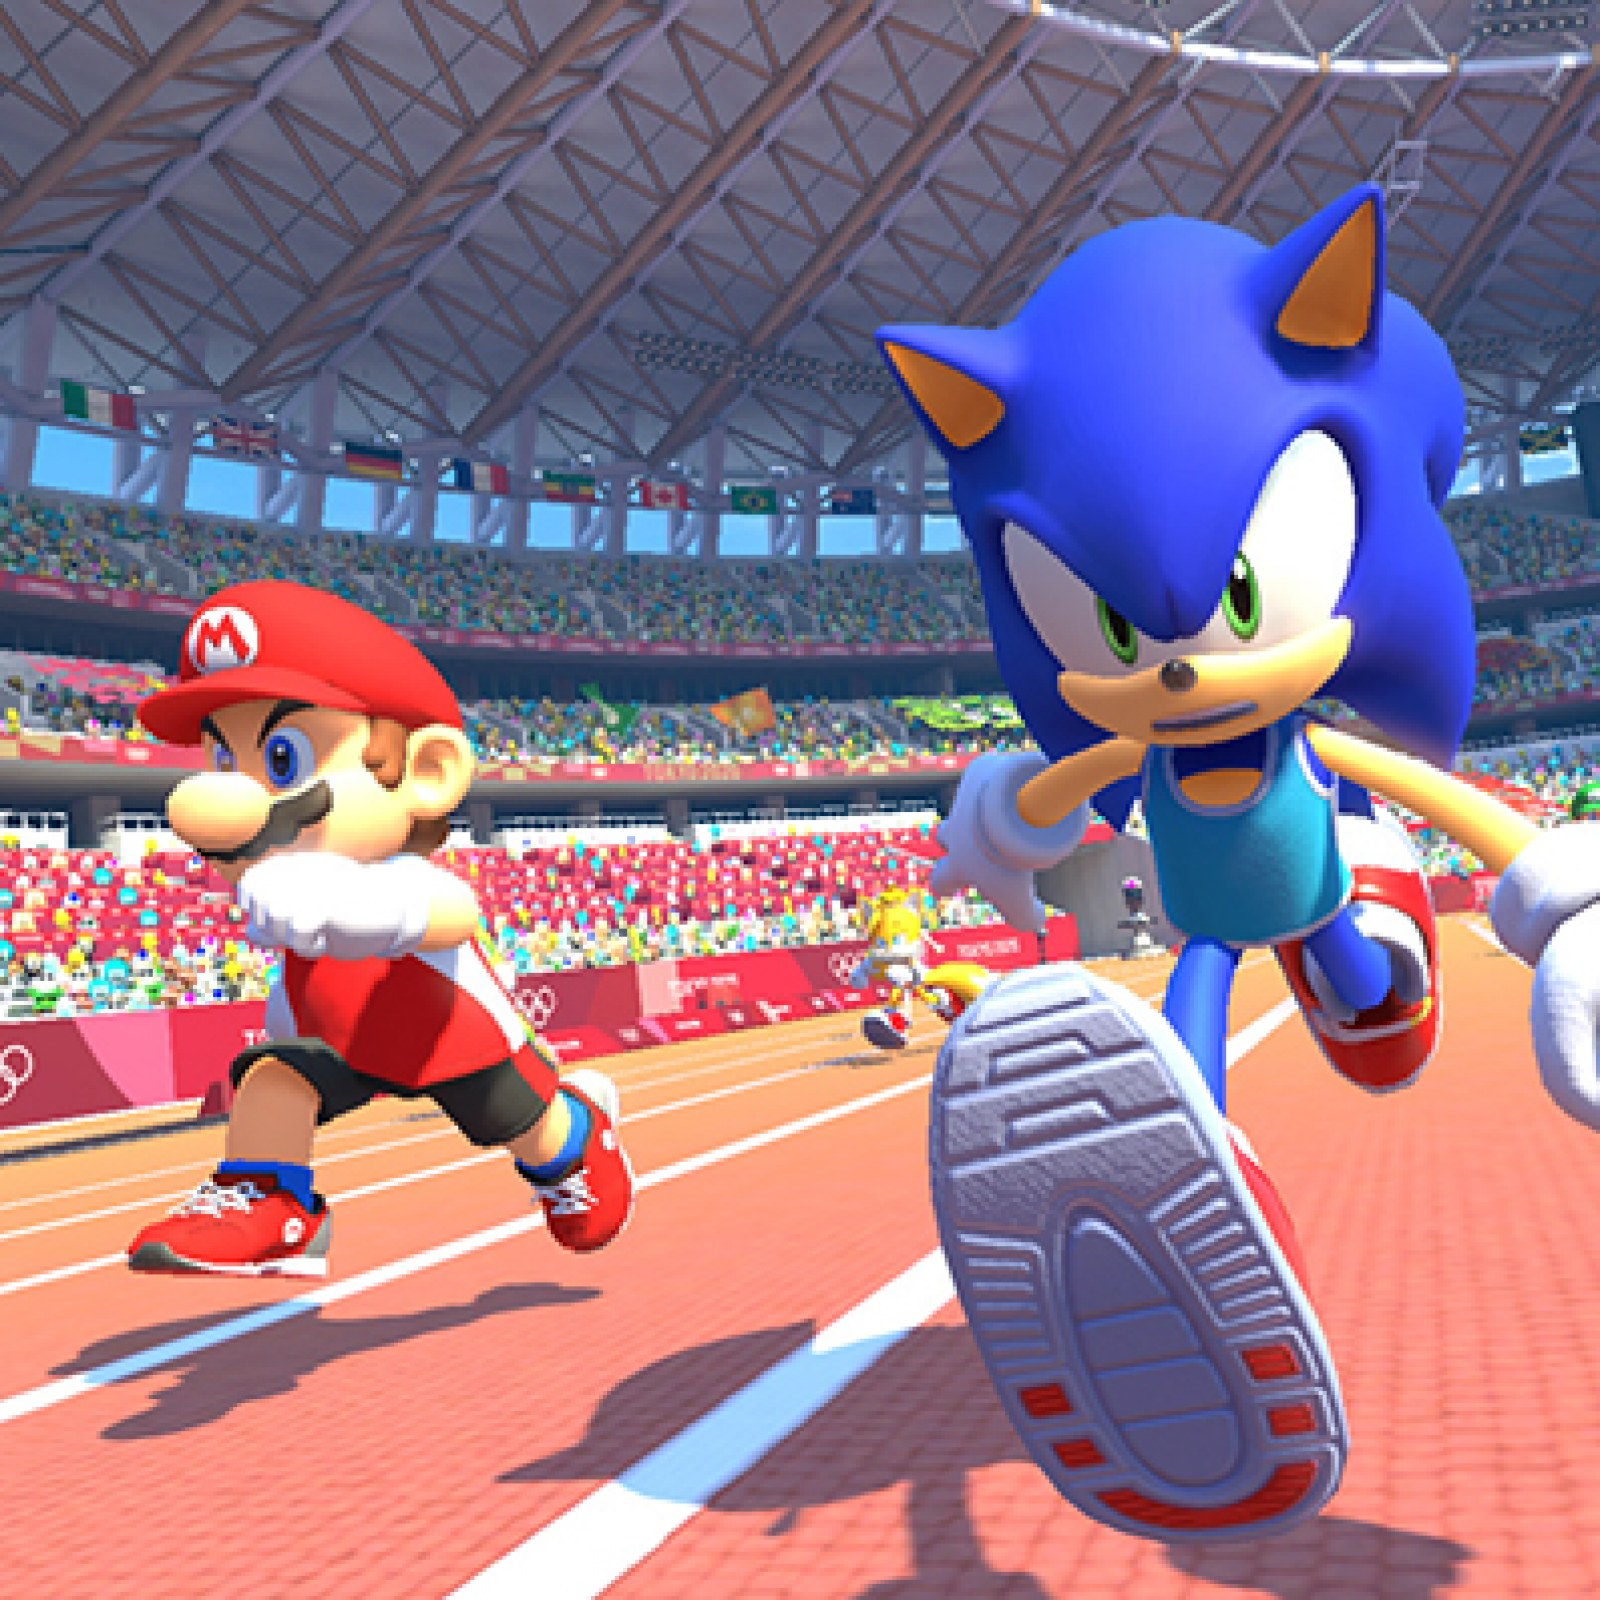 Games At E3 2020.Mario Sonic At The Olympic Games Tokyo 2020 Is Fun When